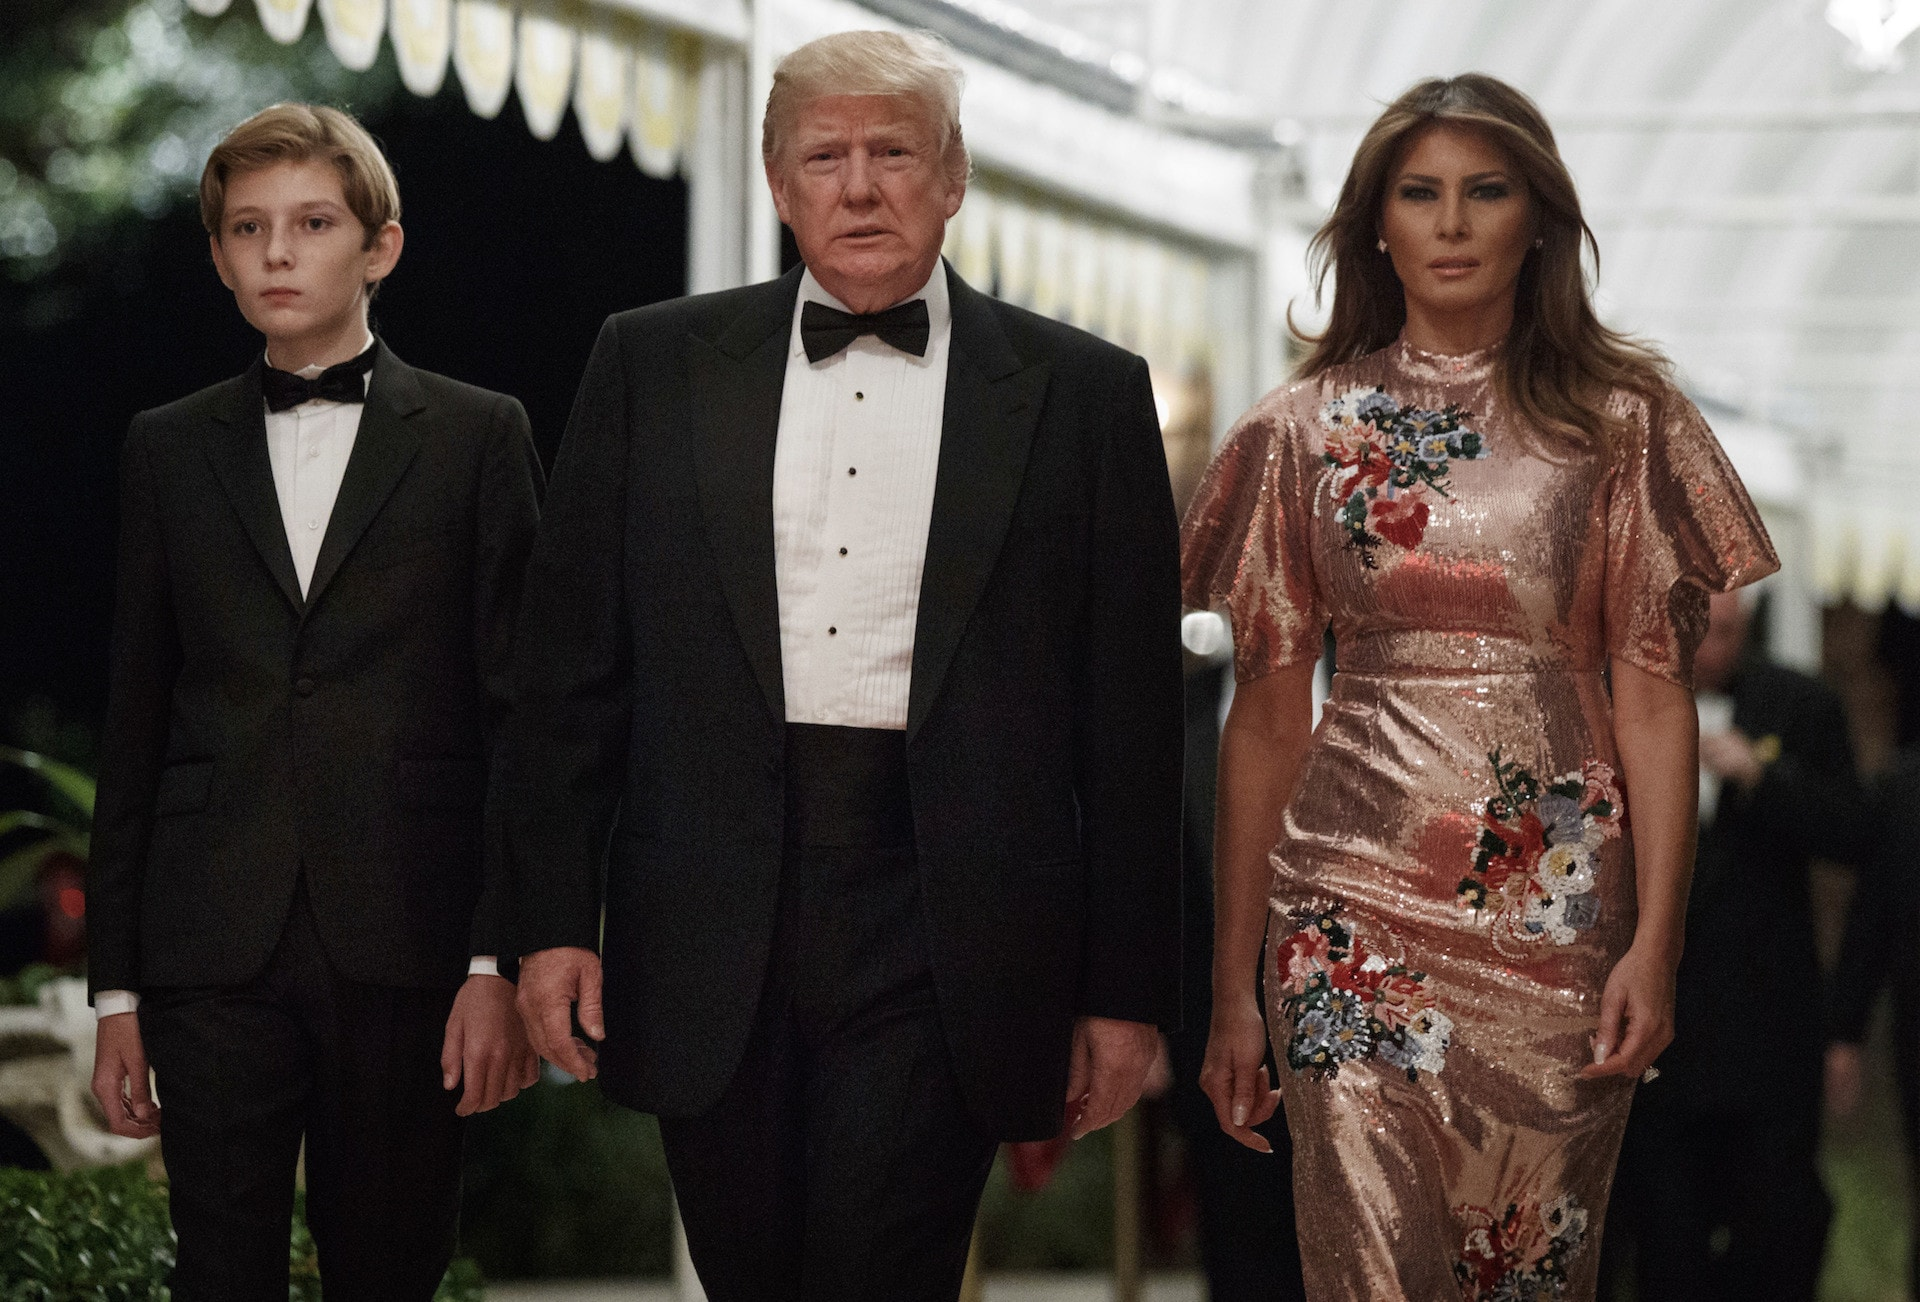 Melania Trump wore a $7,300 Erdem dress on New Year's Eve—and you can now buy it on sale